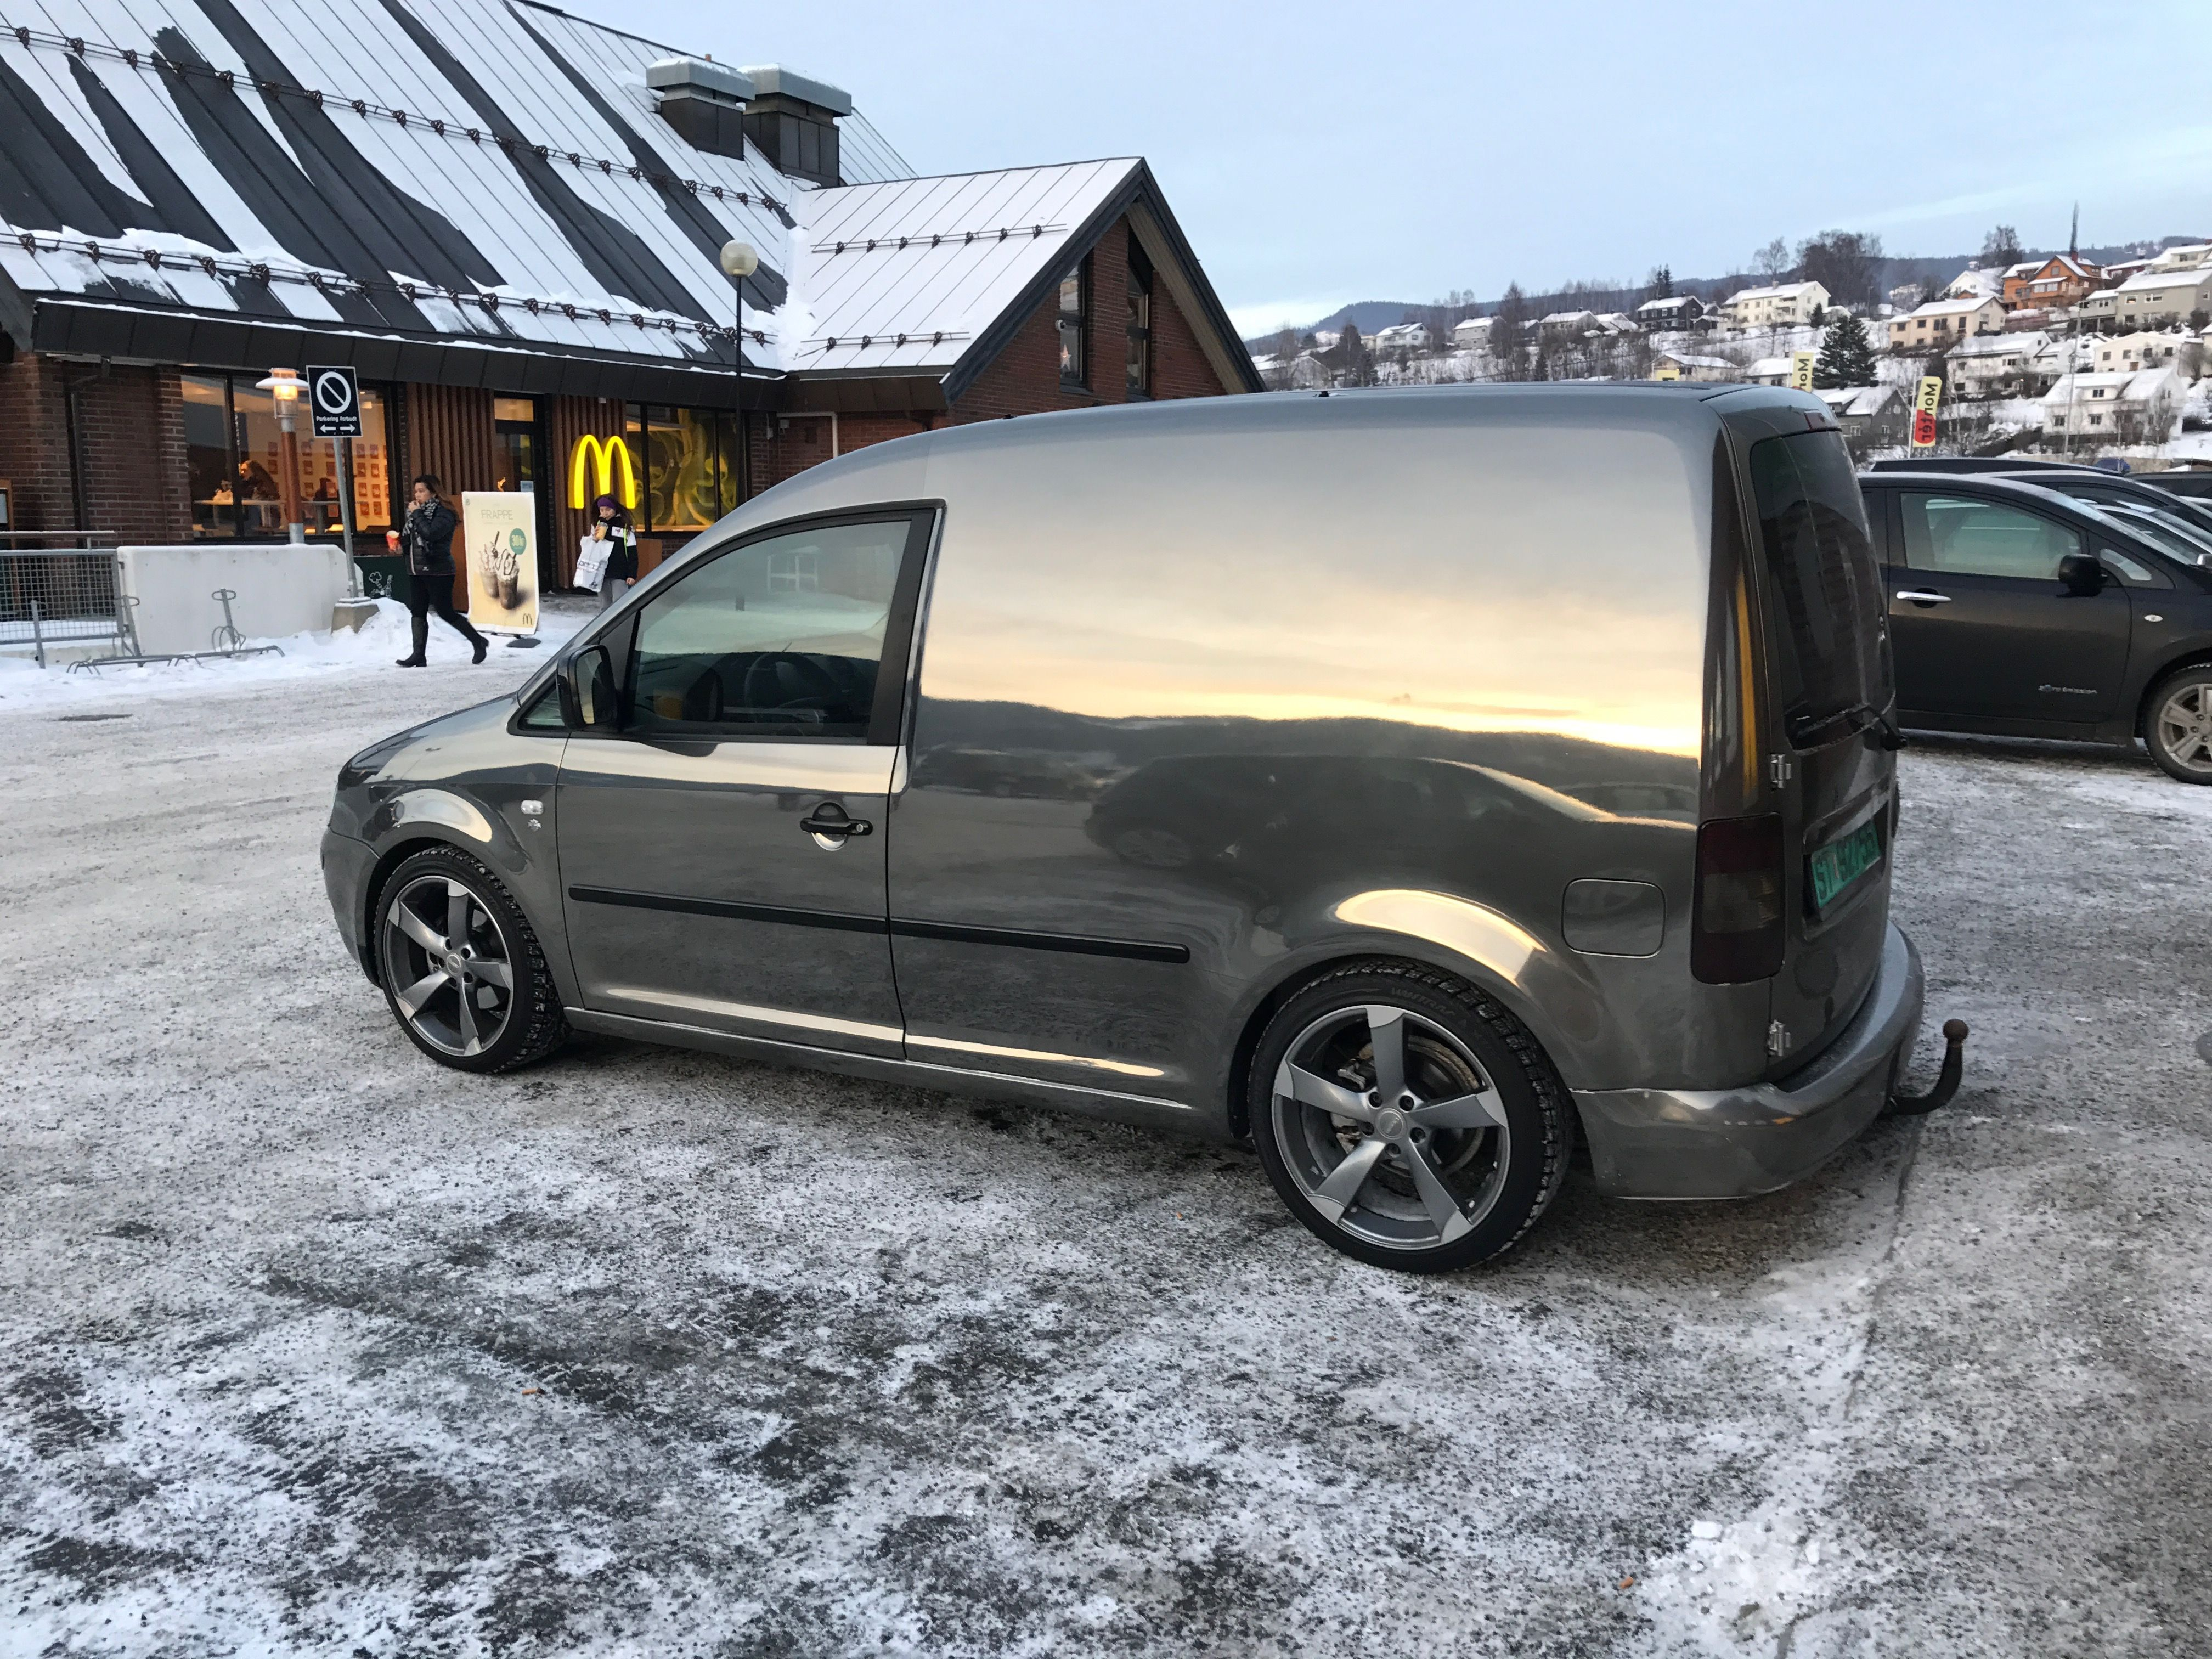 Prächtig Pin by Simon on Simons cars | Pinterest | Cars, Volkswagen caddy &WW_25